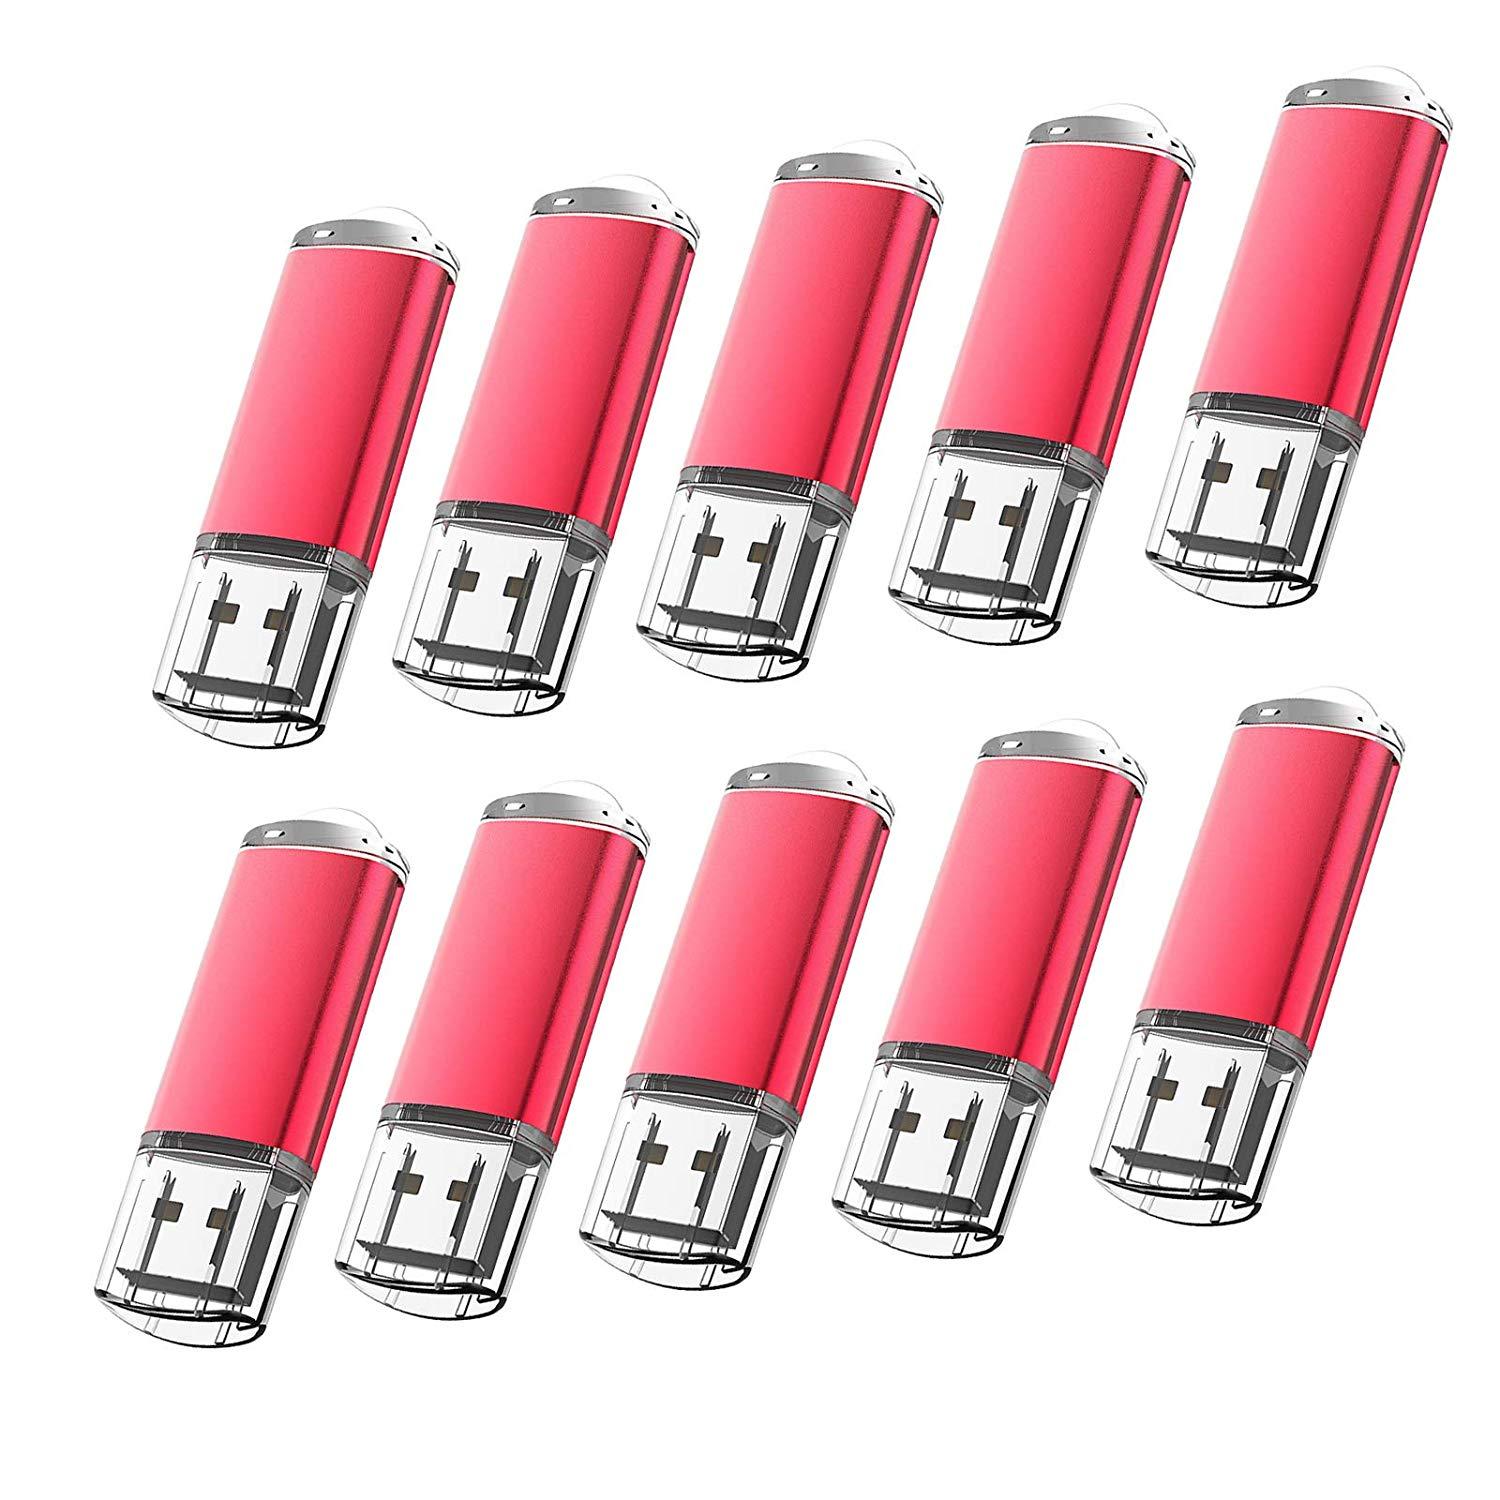 KOOTION 10Pack 16GB USB 2.0 Flash Drives Memory Stick Thumb Drive, Red